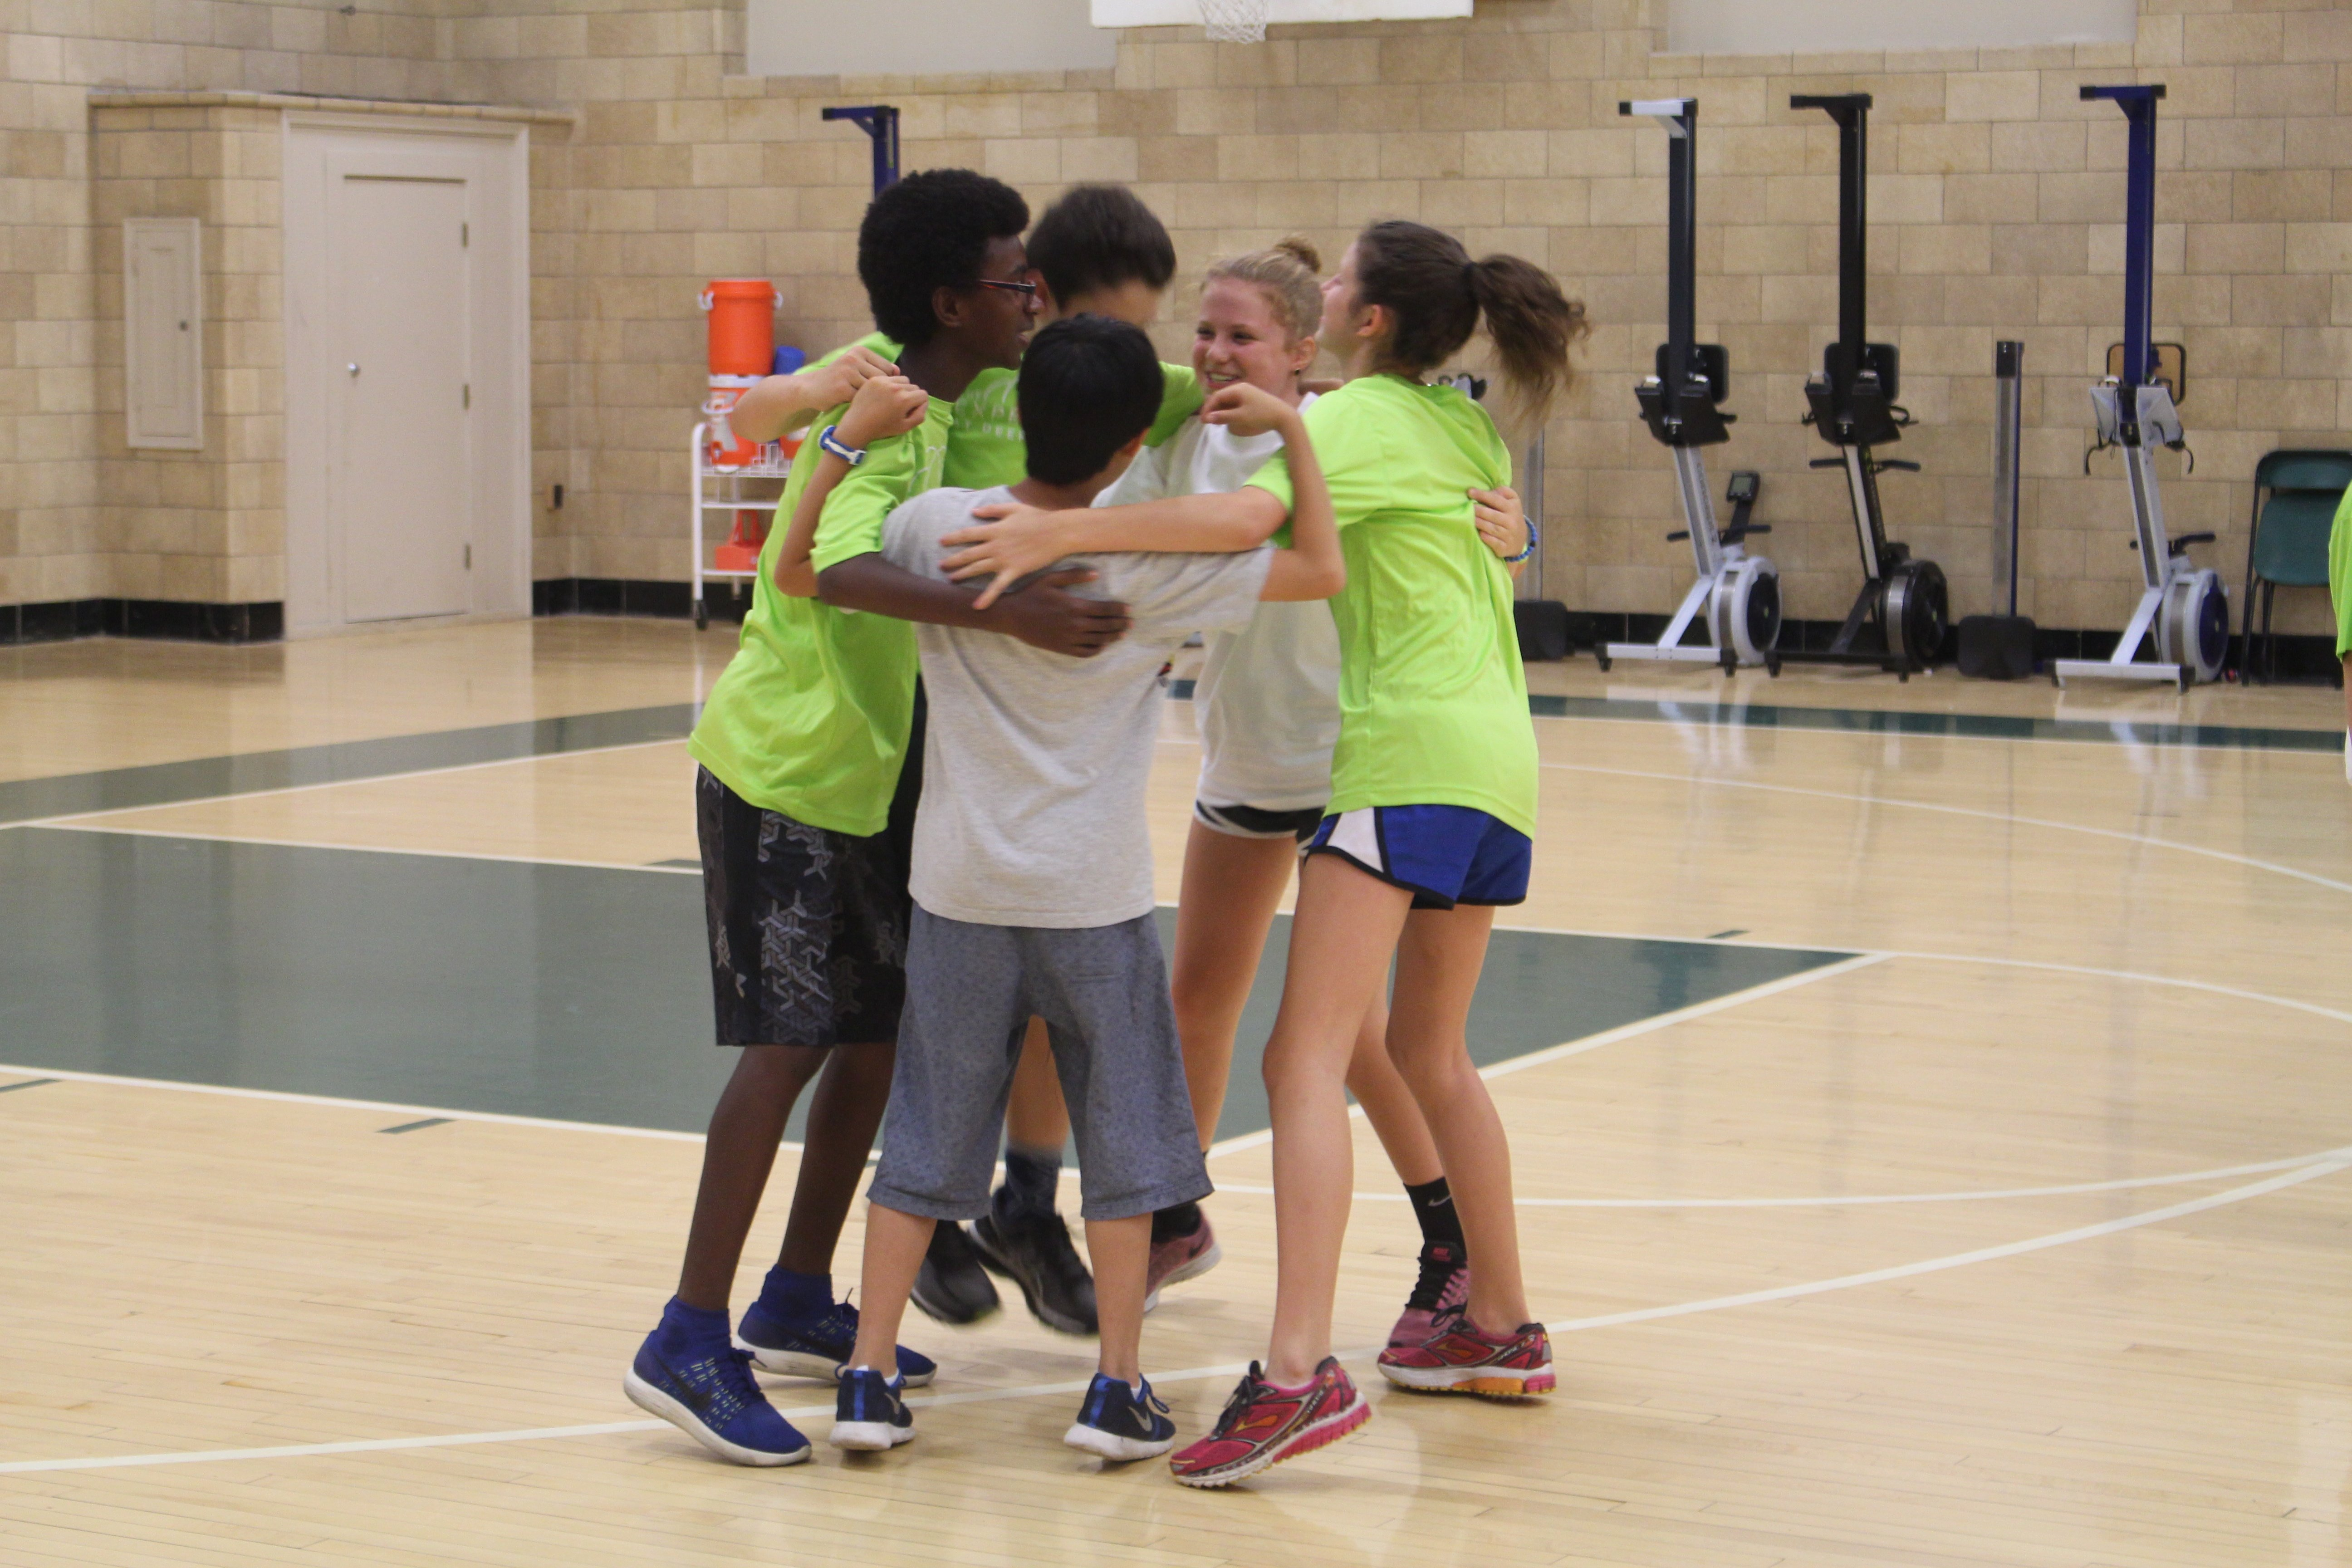 Students huddle for team spirit in our Olympic Basketball playoffs.